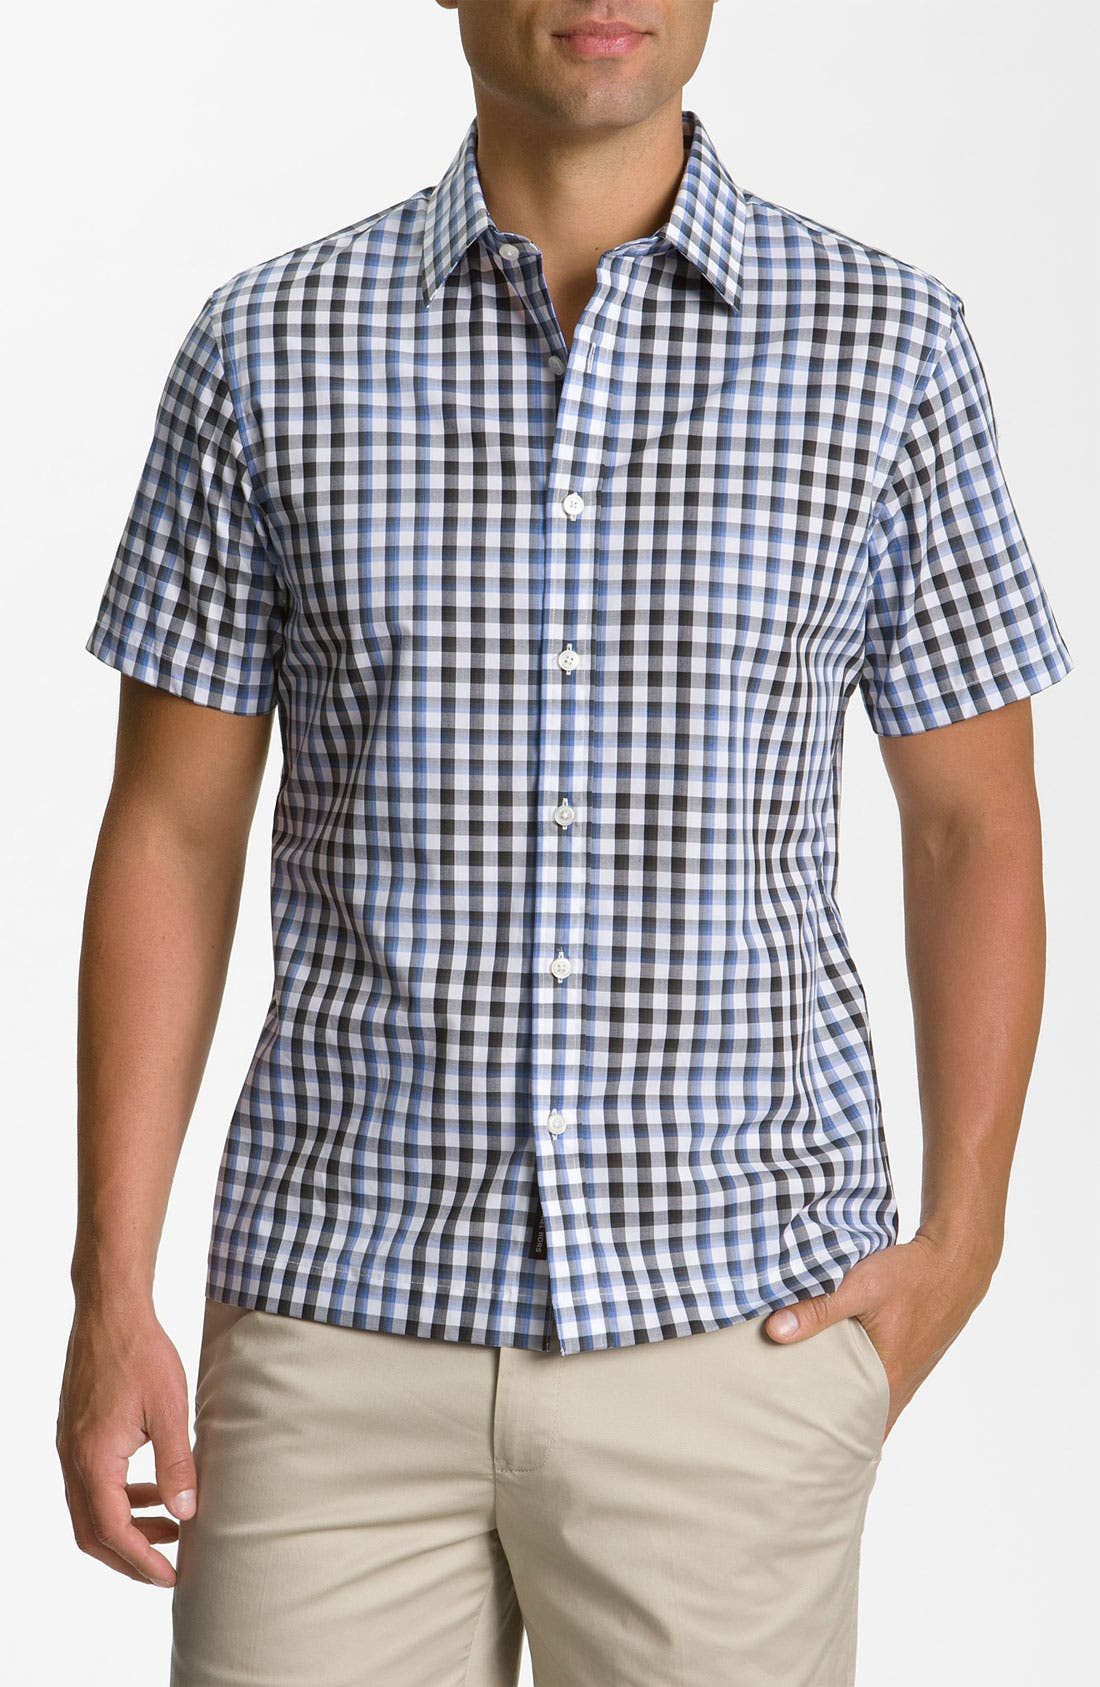 Main Image - Michael Kors 'Nils' Check Plaid Woven Shirt